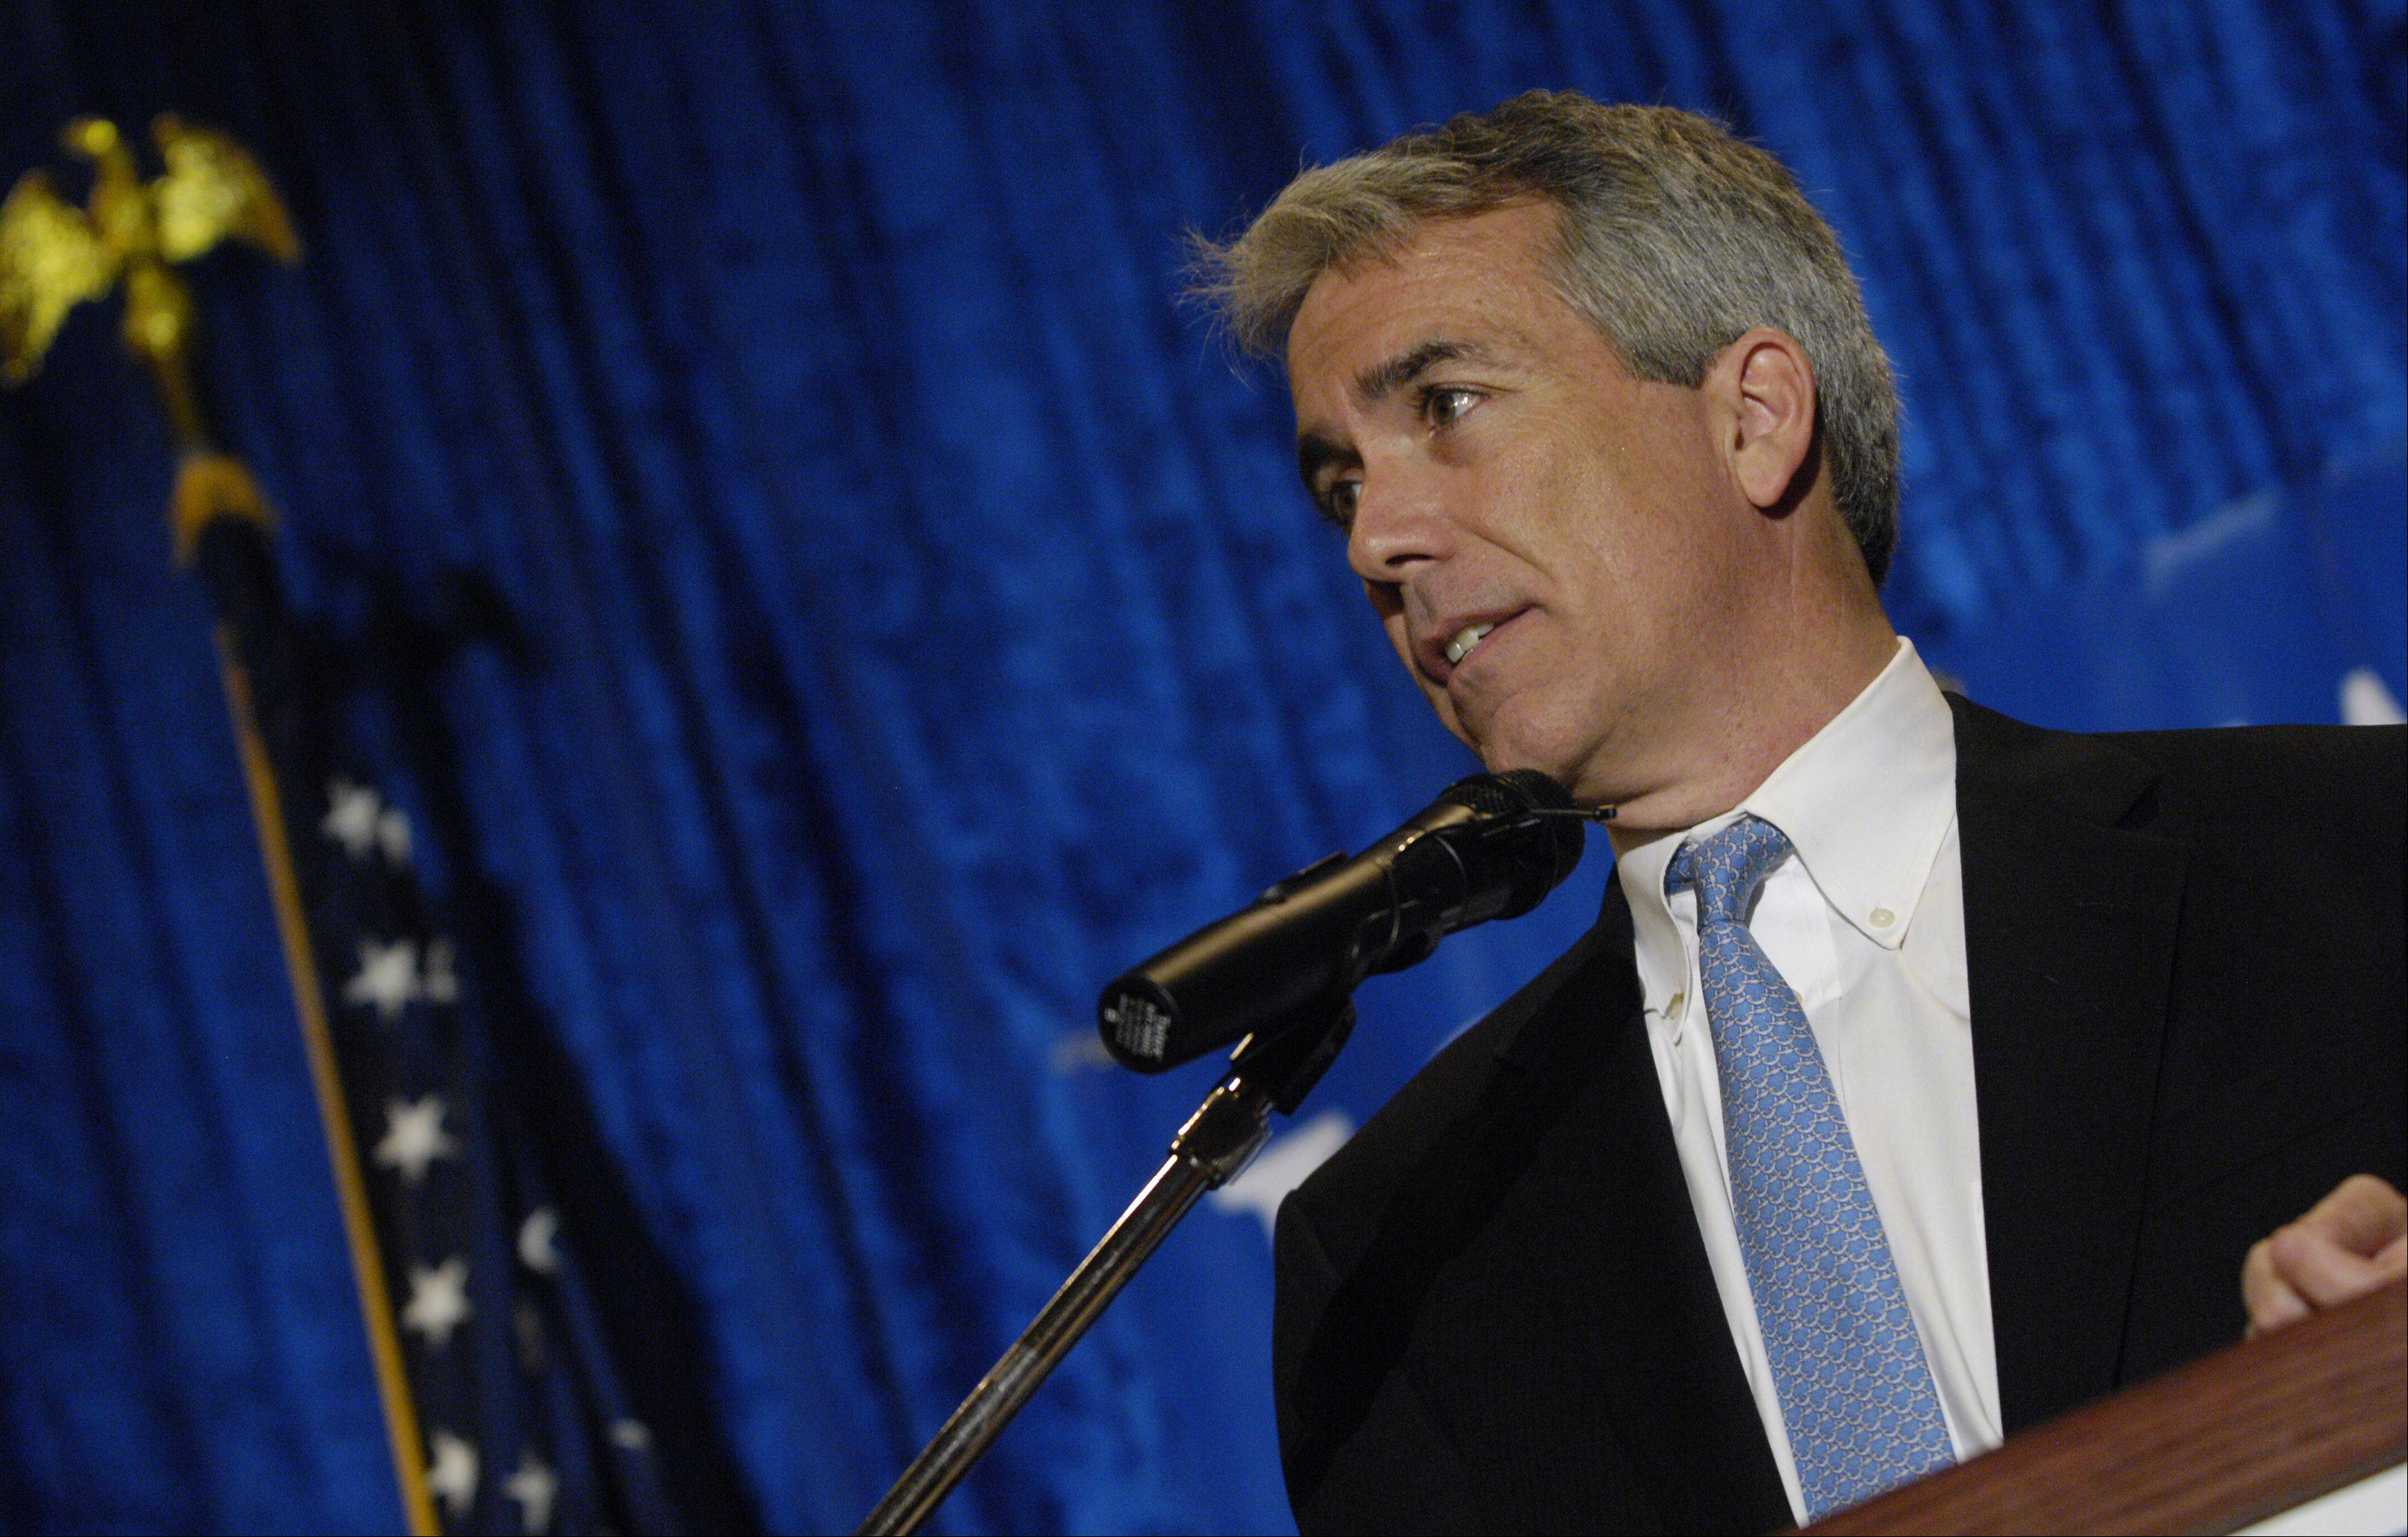 Joe Walsh for governor in 2014?